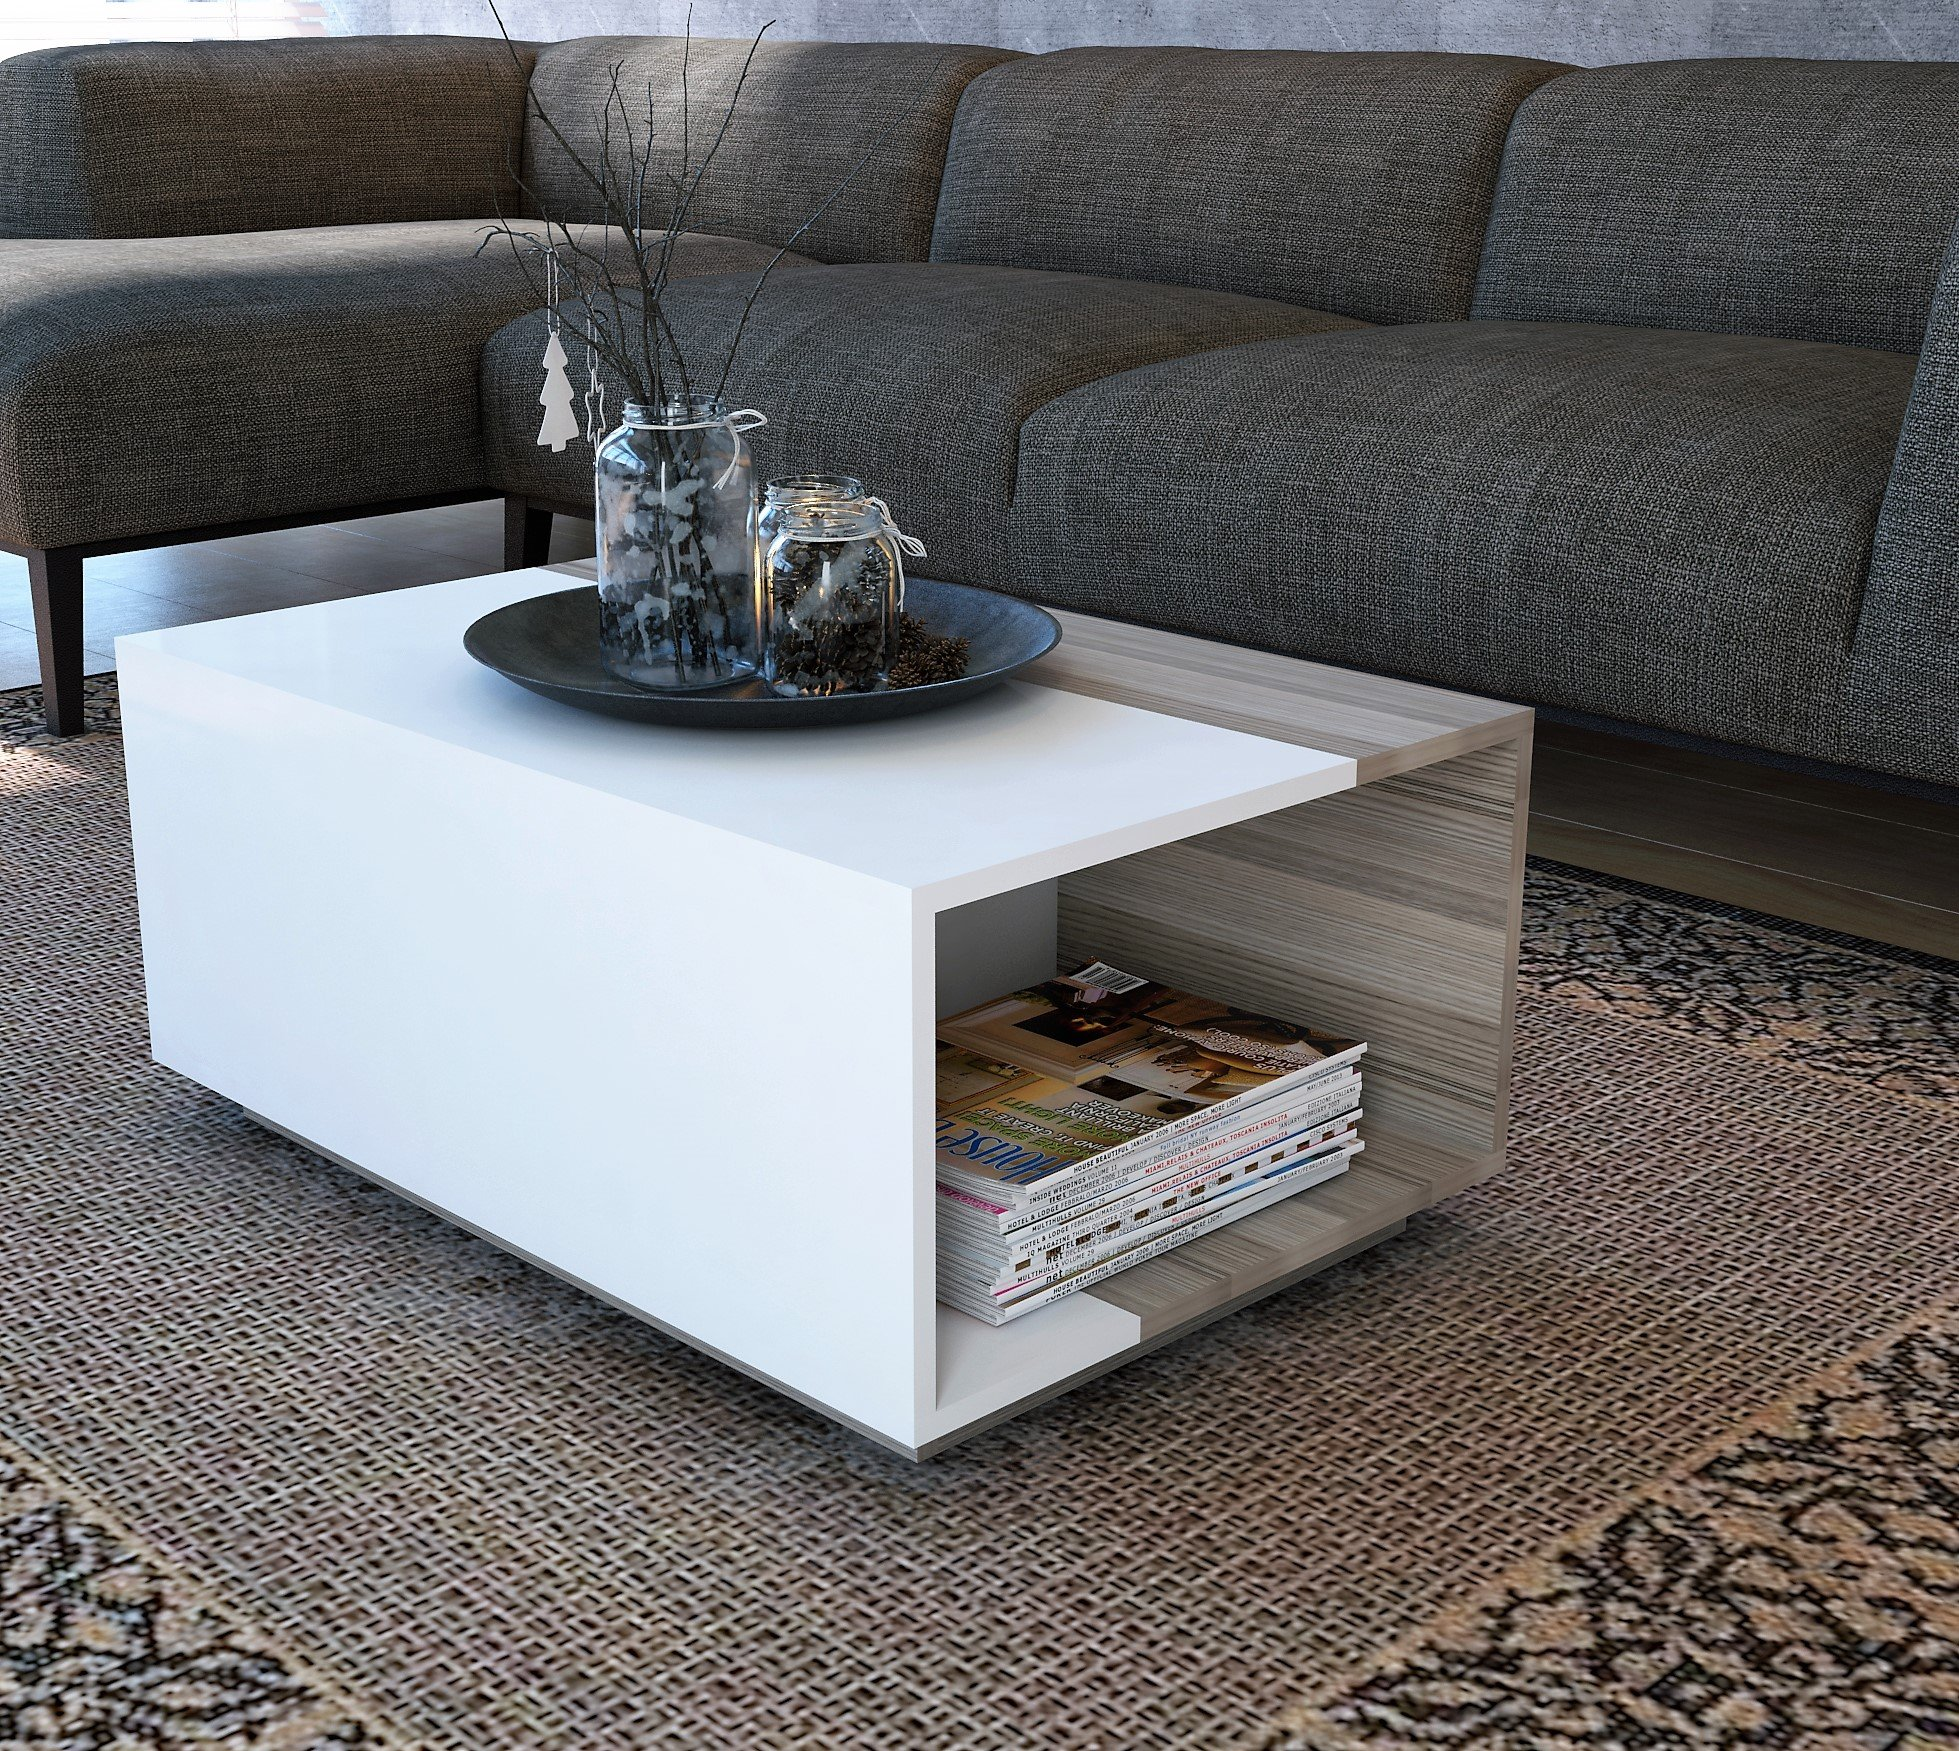 Decorotika - Surprise Modern Coffee and Cocktail Table - Living Room Furniture by Decorotika